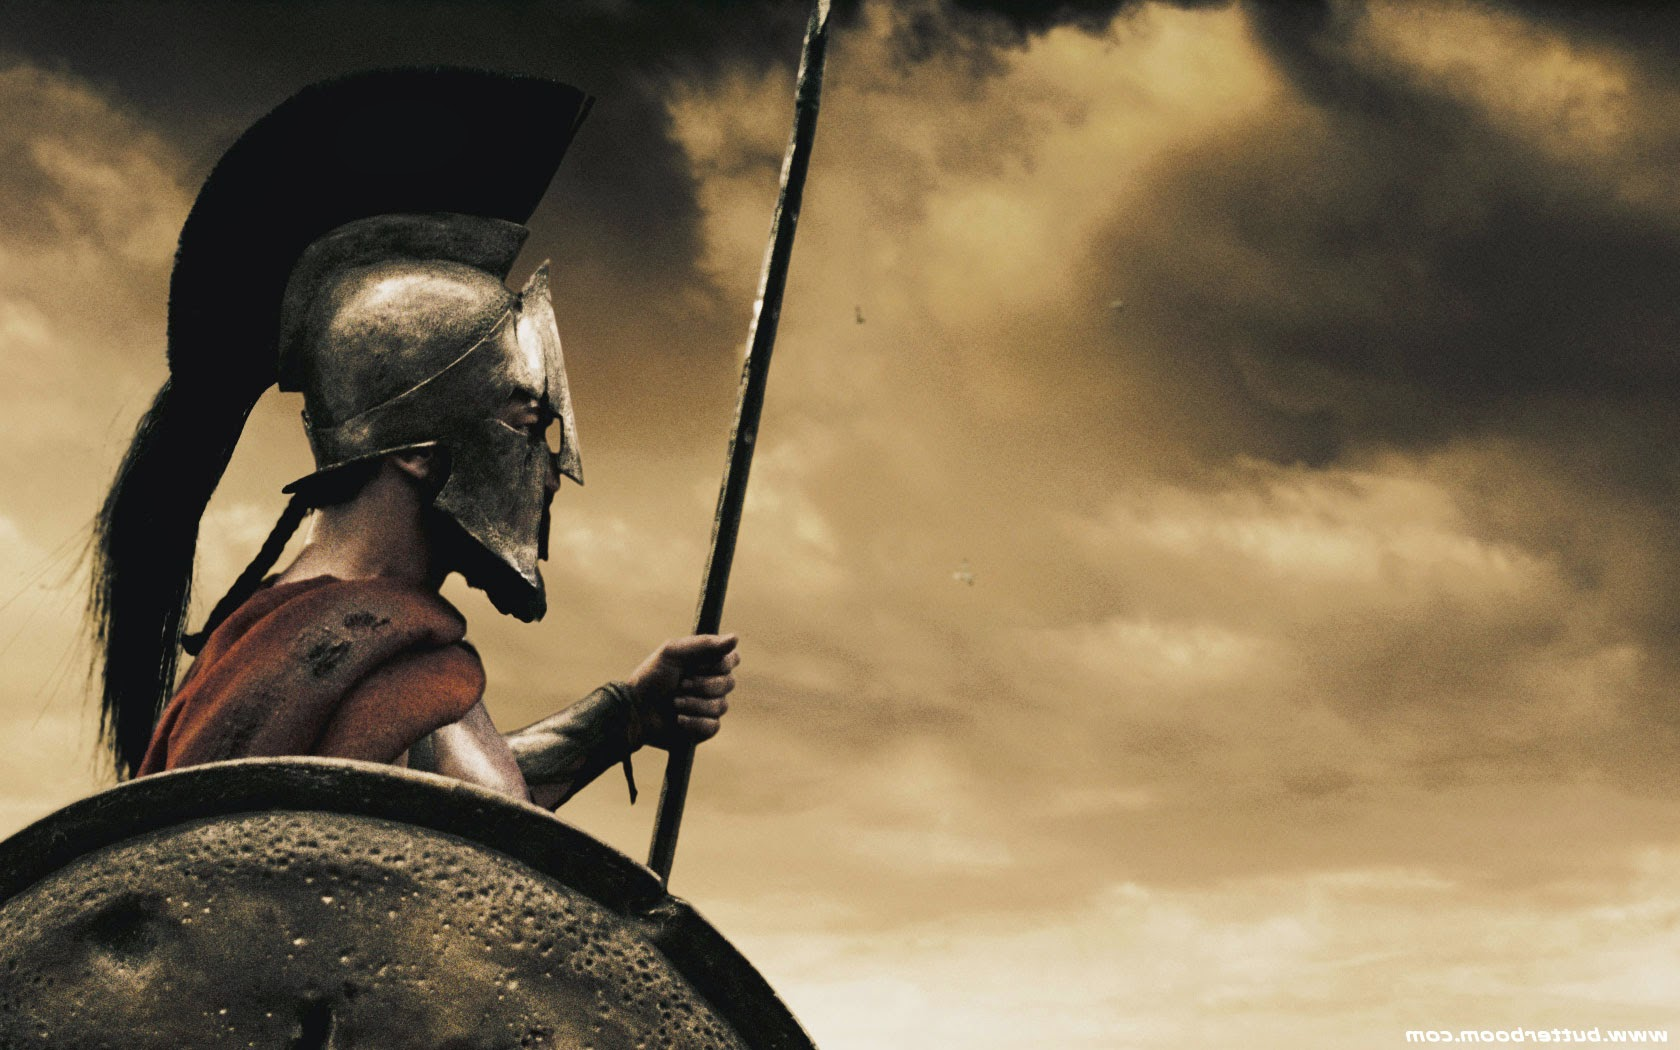 300 spartans wallpaper wallpapers - photo #24